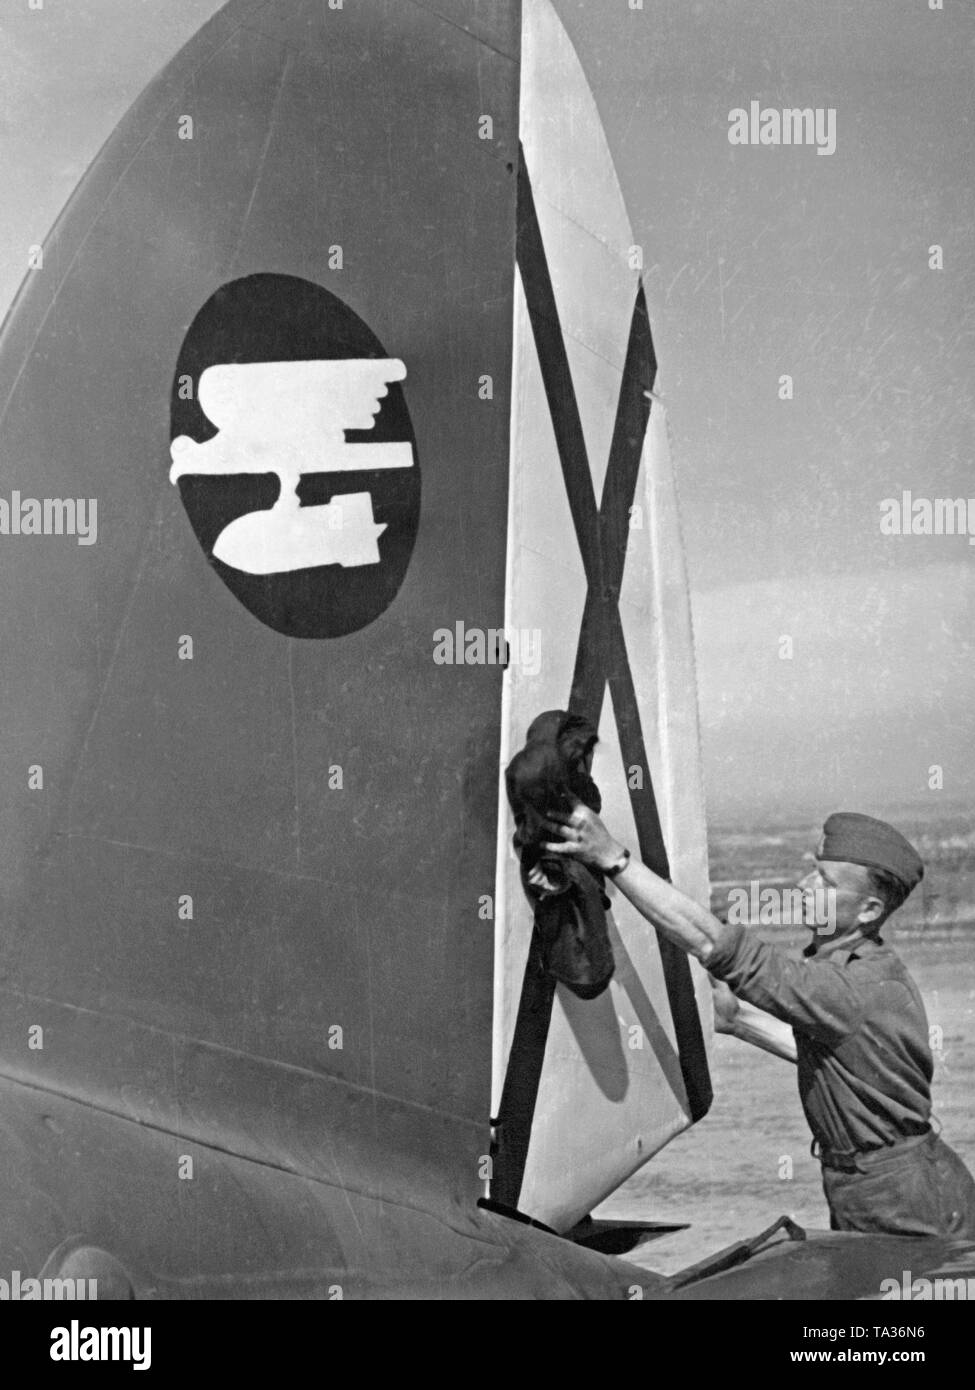 Photo of a legionary from the ground personnel of the Fliegertruppe (air force) of the Condor Legion, who is cleaning a vertical stabilizer of the fighter bomber Heinkel He 111 on an airfield in Spain, 1939. The aircraft belongs to the battle group 88. (Hull cockade: eagle performing nosedive with bomb). On display the Saint Andrew's Cross, the tail cockade of the Spanish air force. - Stock Image